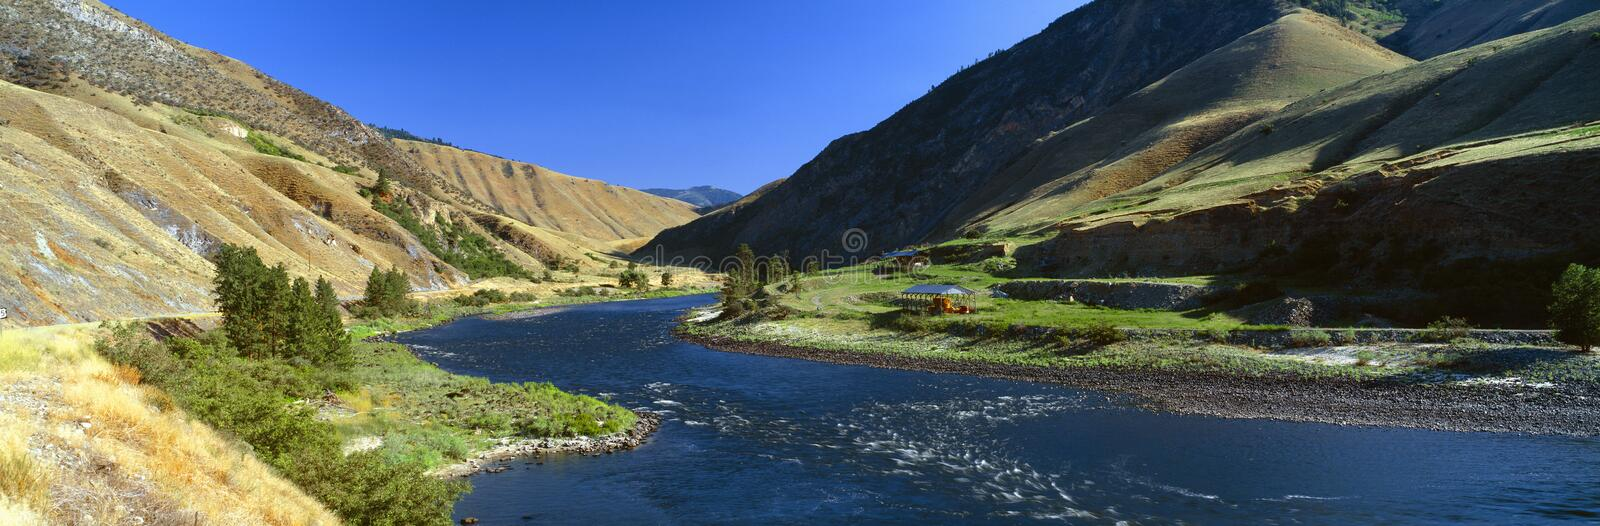 Clearwater River. Lewis and Clark 1805 expedition route, Idaho stock photos